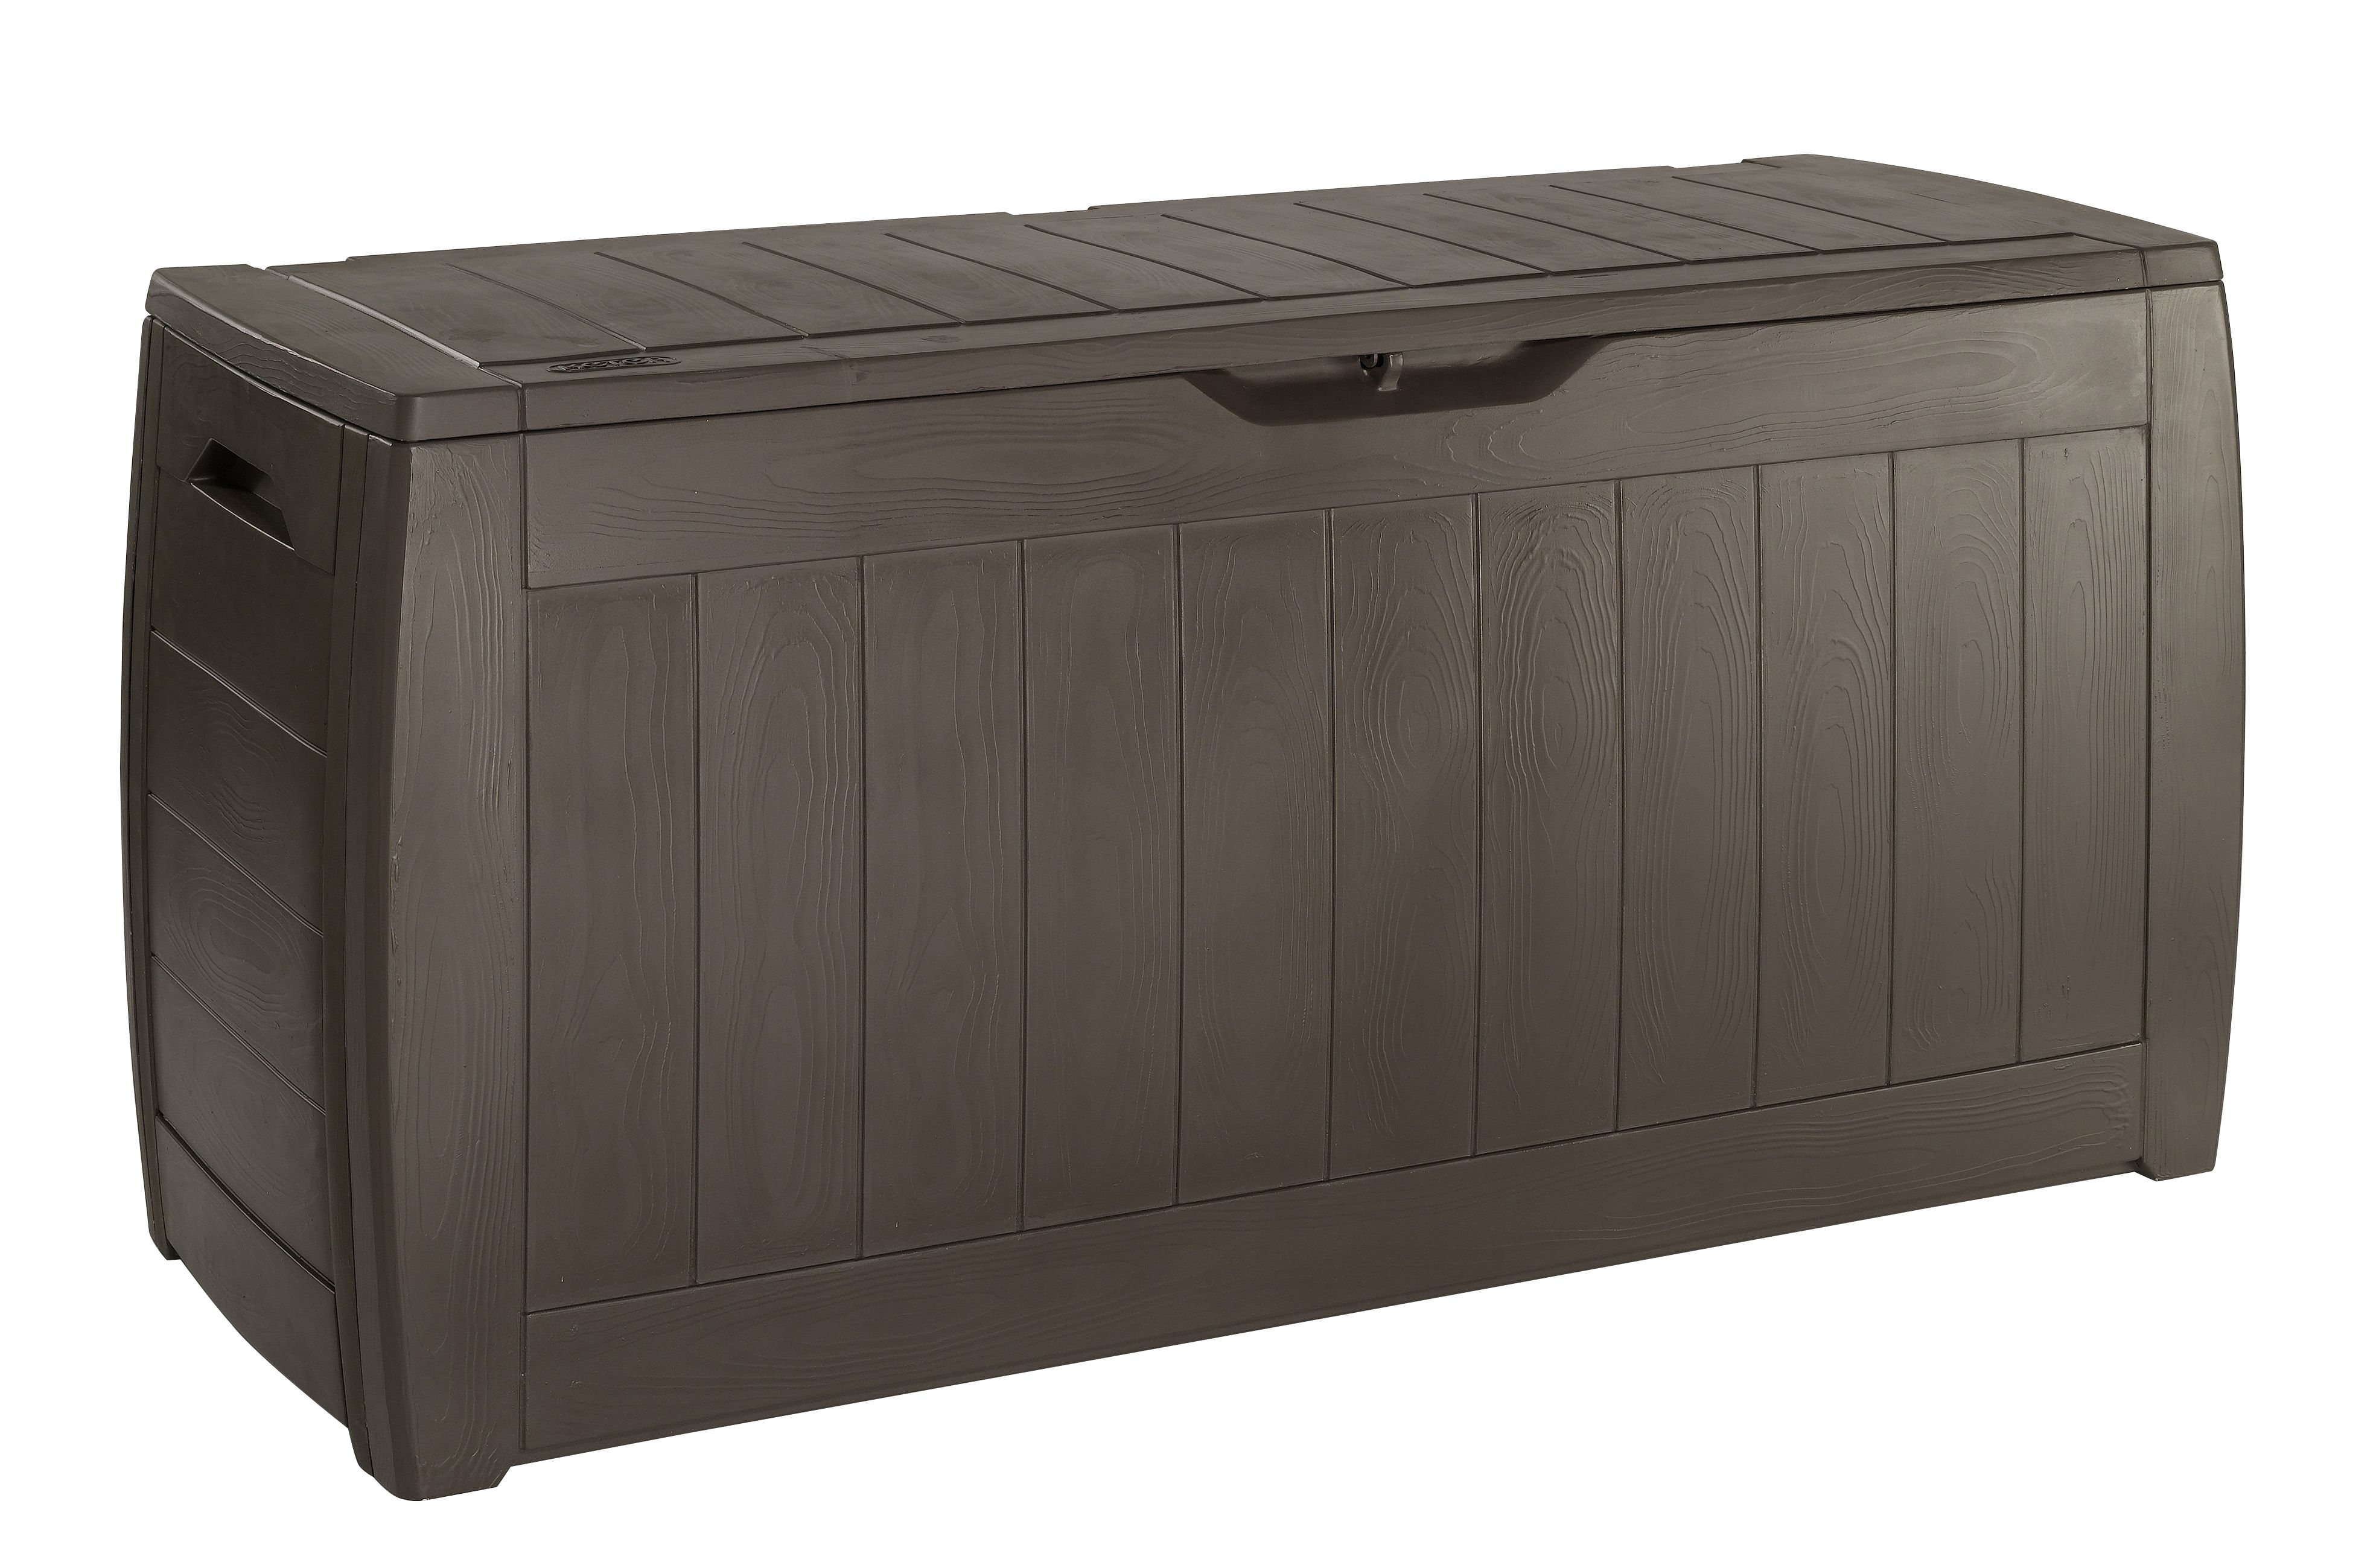 Storage Solutions For Dad S Outdoor Space Storage Fathersday Outdoor Storage Boxes Outdoor Store Outdoor Storage Box